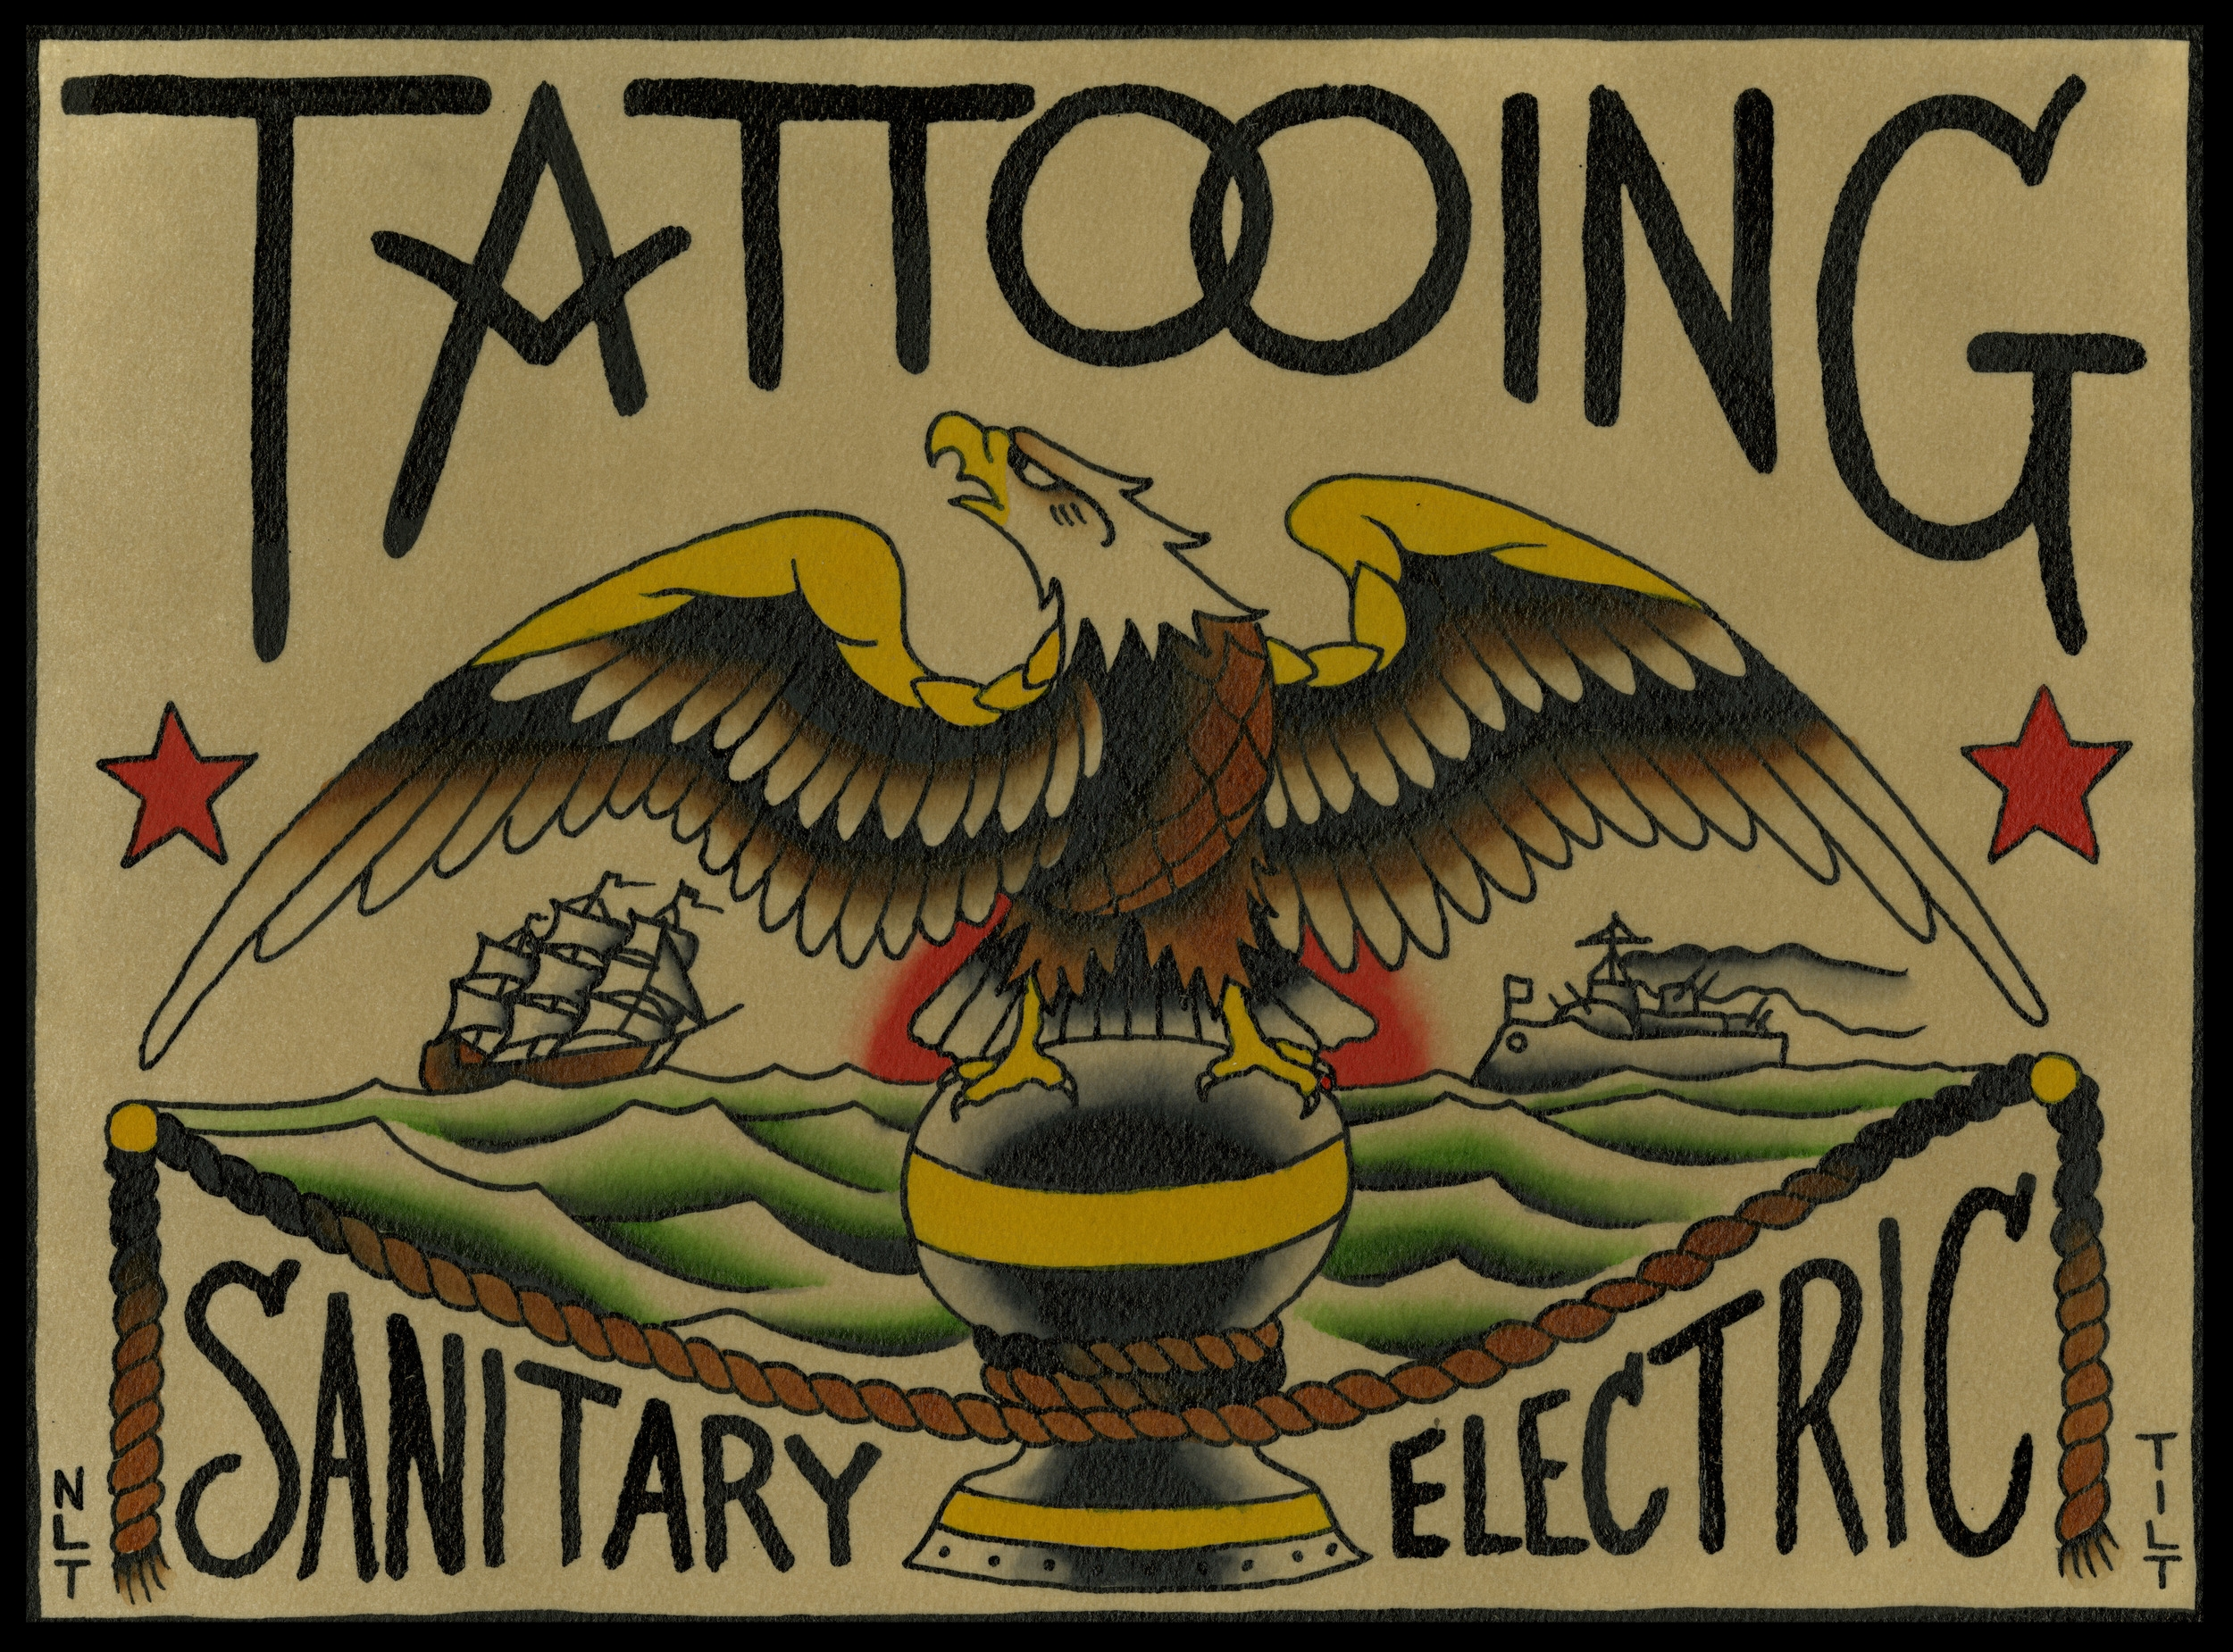 tattooing sanitary electric stained.jpg